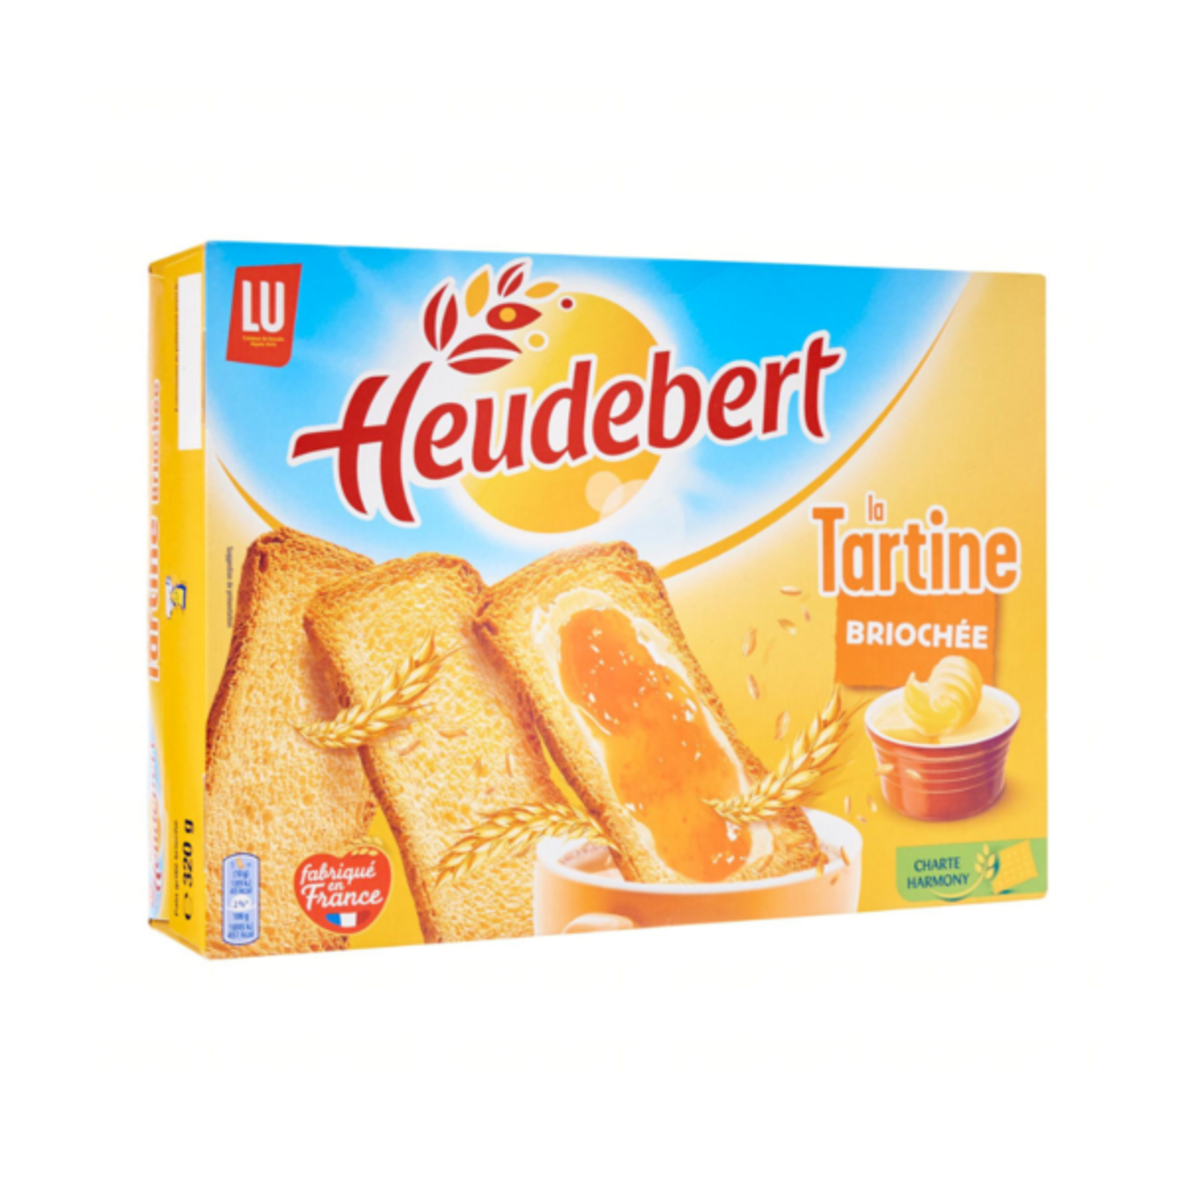 Direct from France - Heudebert Brioche Tartines (320g)